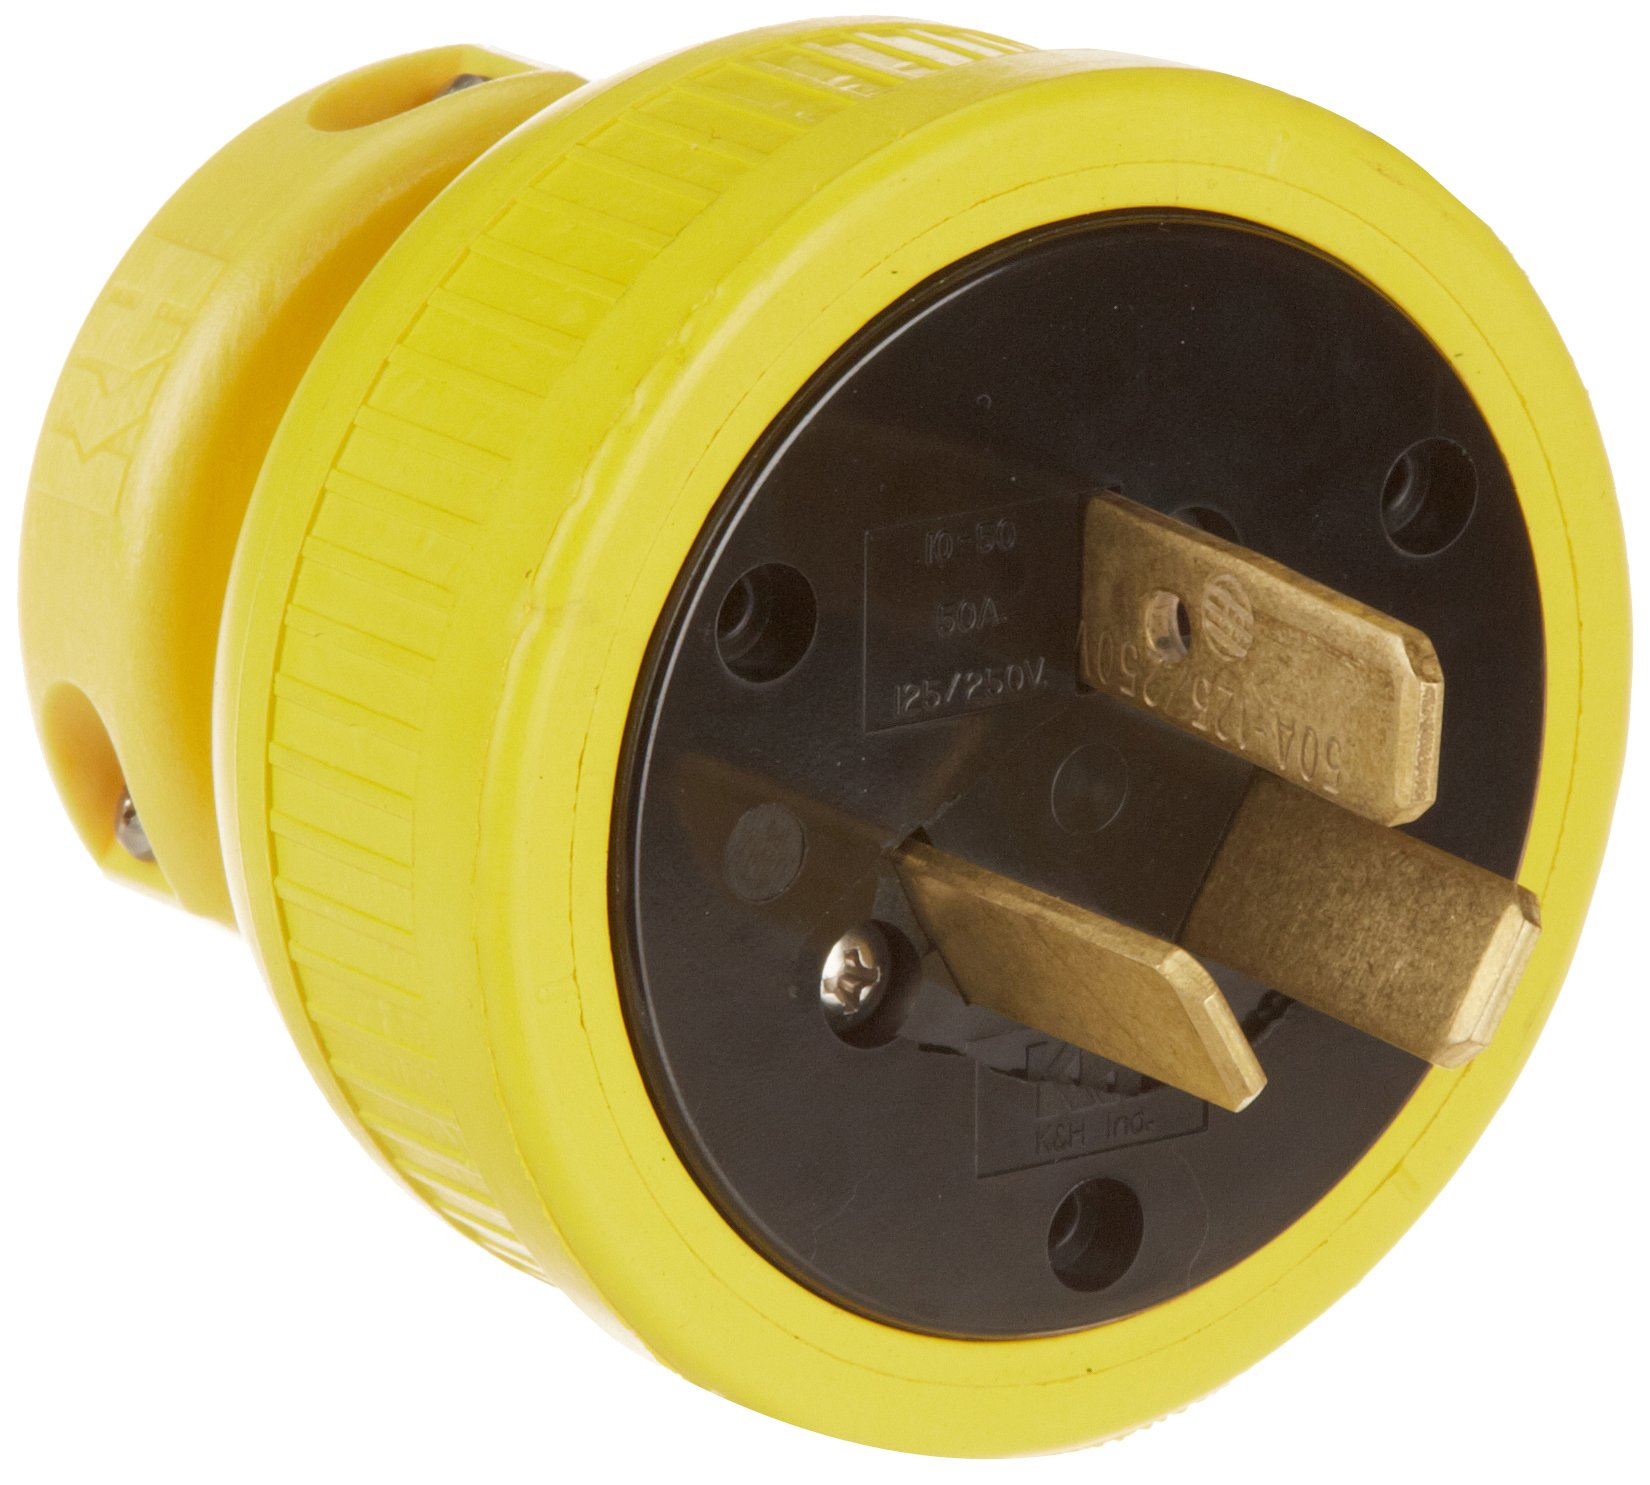 KH Industries P1050DF Rubber/Polycarbonate Rewireable Flip Seal Straight Blade Plug, 3 Pole/3 Wire, 50 amps, 125-250V AC, Yellow